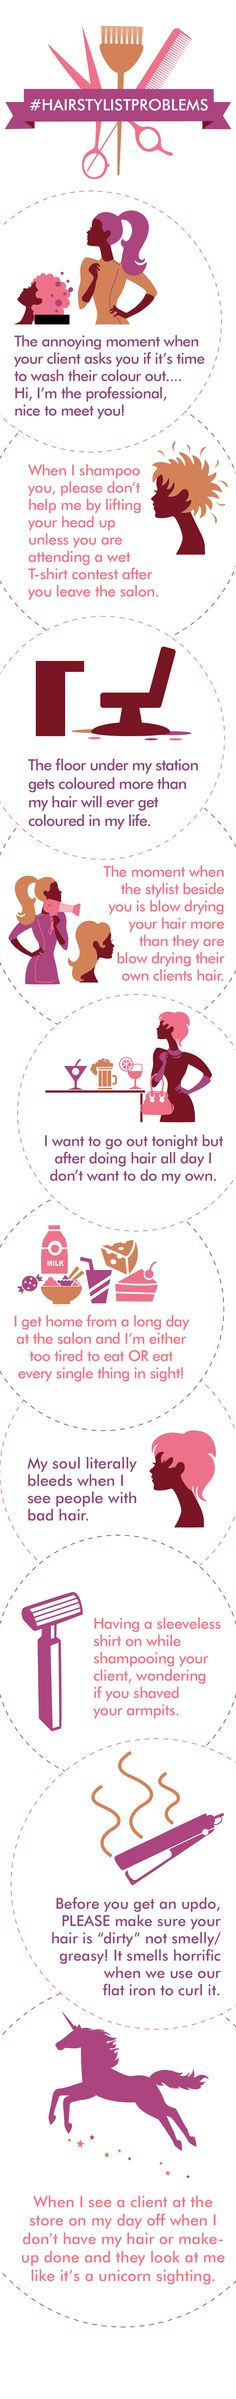 HairstylistProblems: OMG & trudat to every pixels Hairdresser Quotes, Hairstylist Quotes, Salon Quotes, Hair Quotes, Hairstylist Problems, Business Hairstyles, Love My Job, Love Hair, Beauty Shop